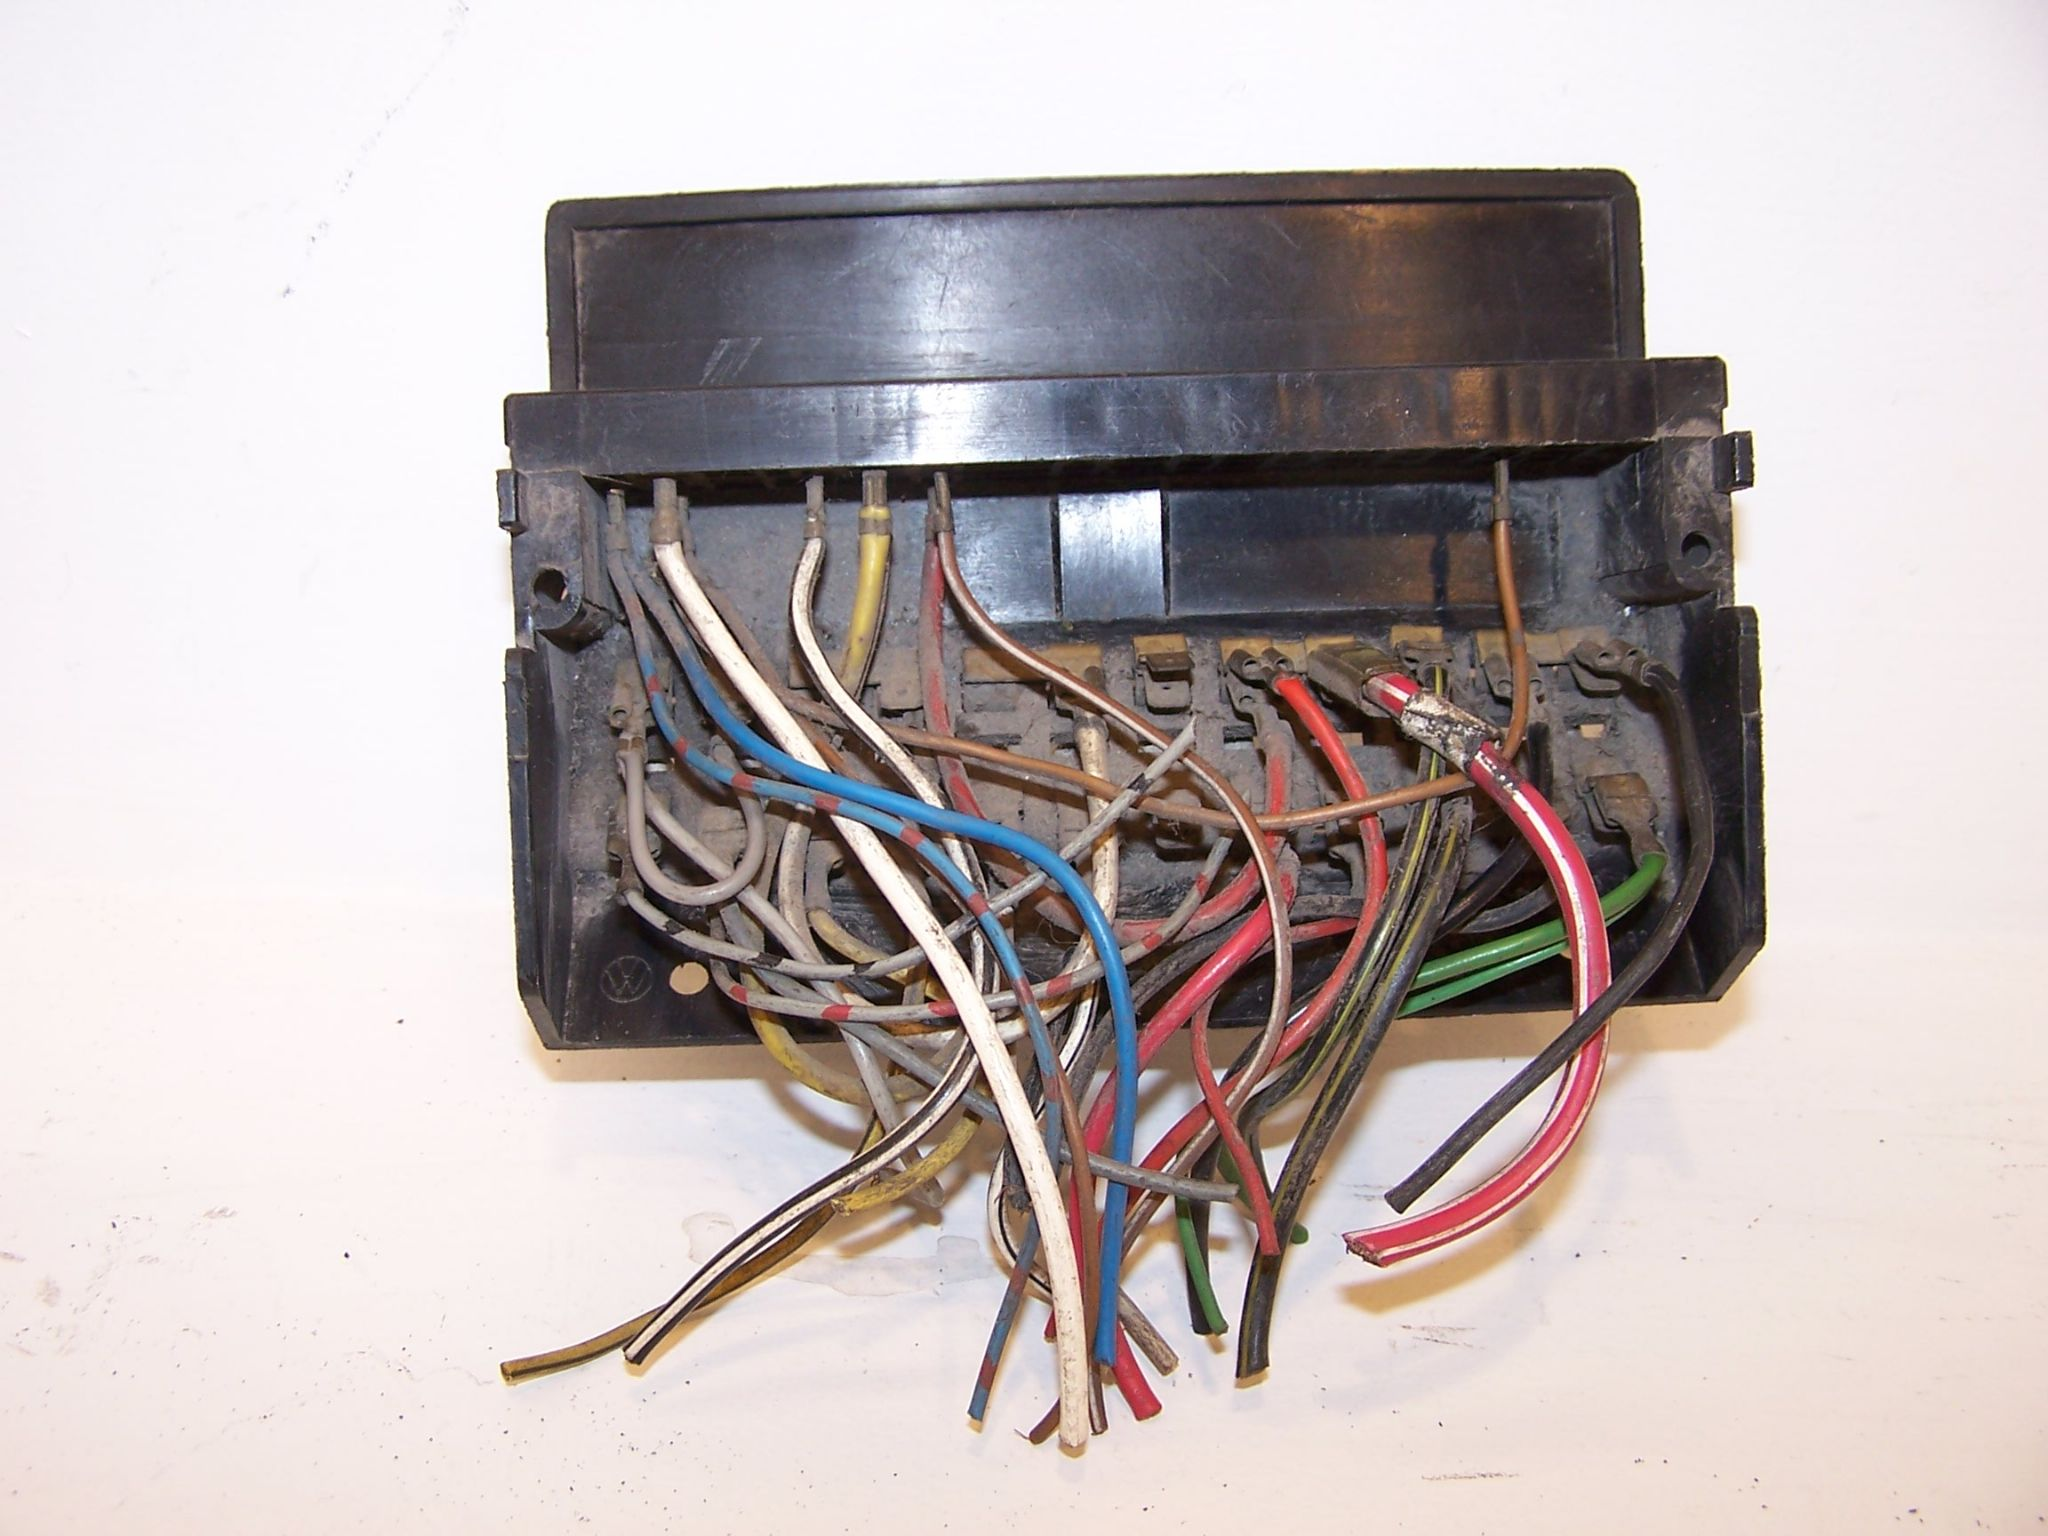 1974 vw fuse box wiring diagram img  1974 beetle fuse box data diagram schematic 1974 vw beetle fuse box location 1974 beetle fuse